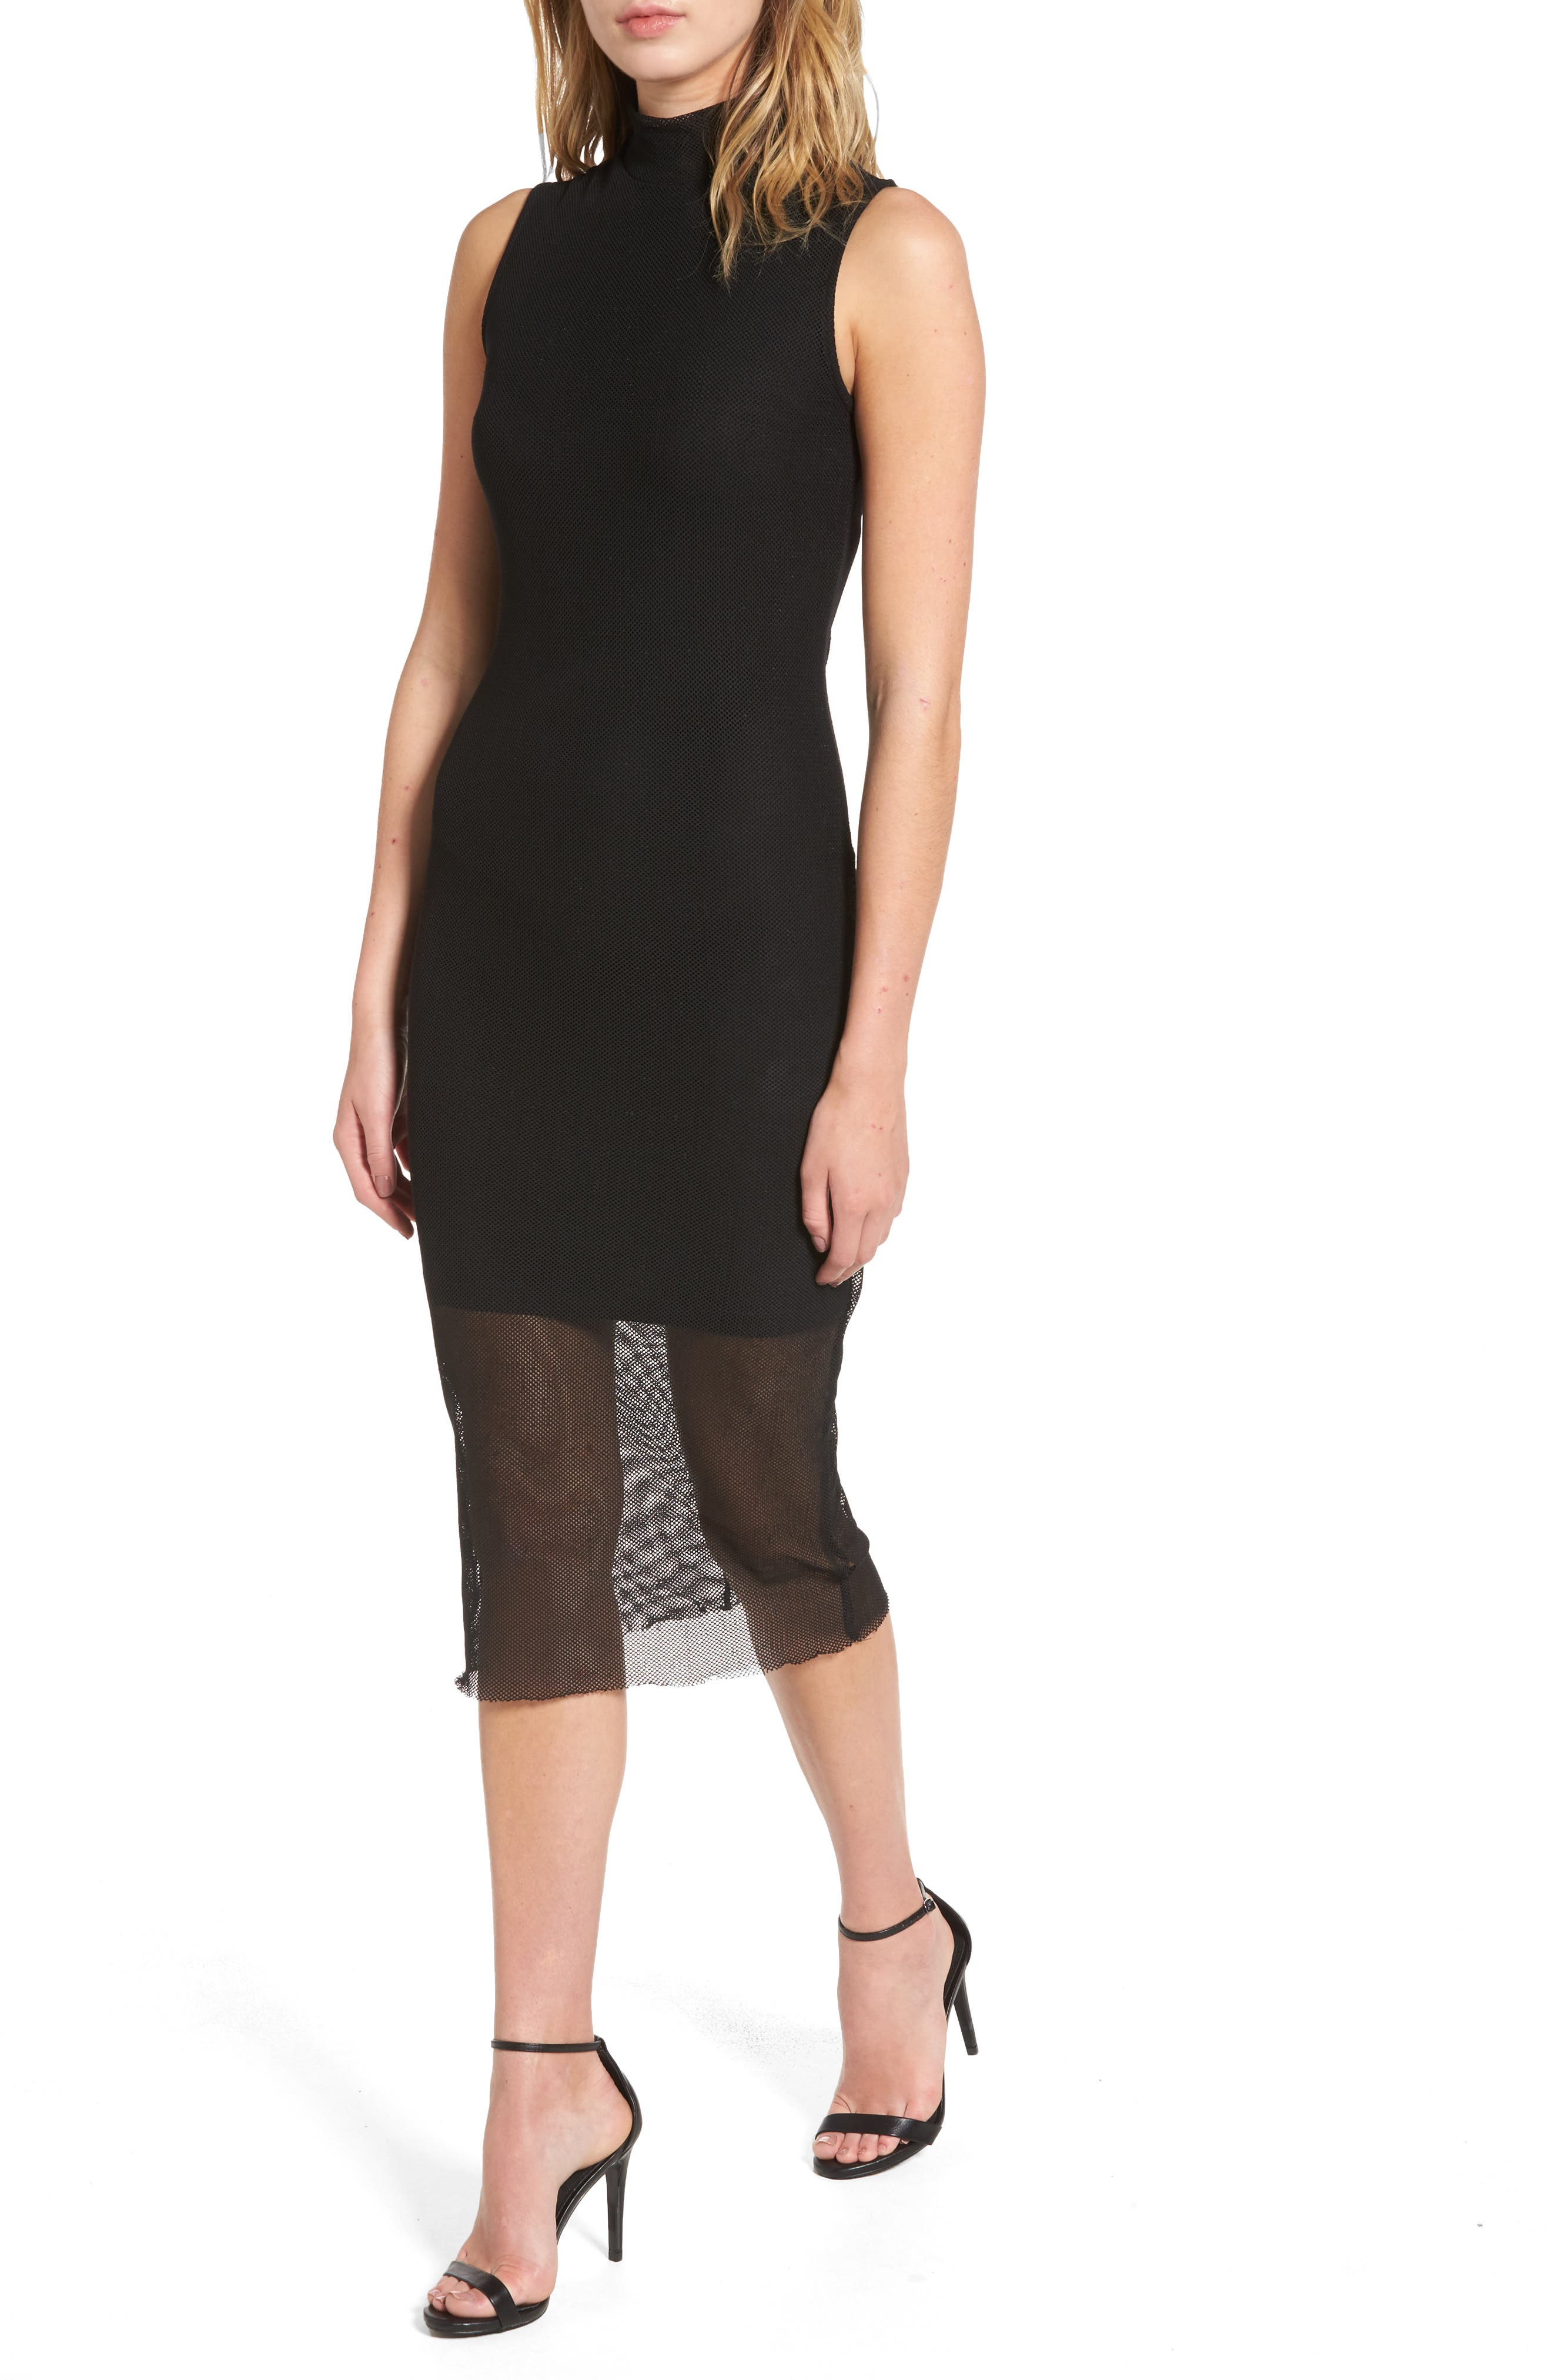 Main Image - KENDALL + KYLIE Mesh Body-Con Dress